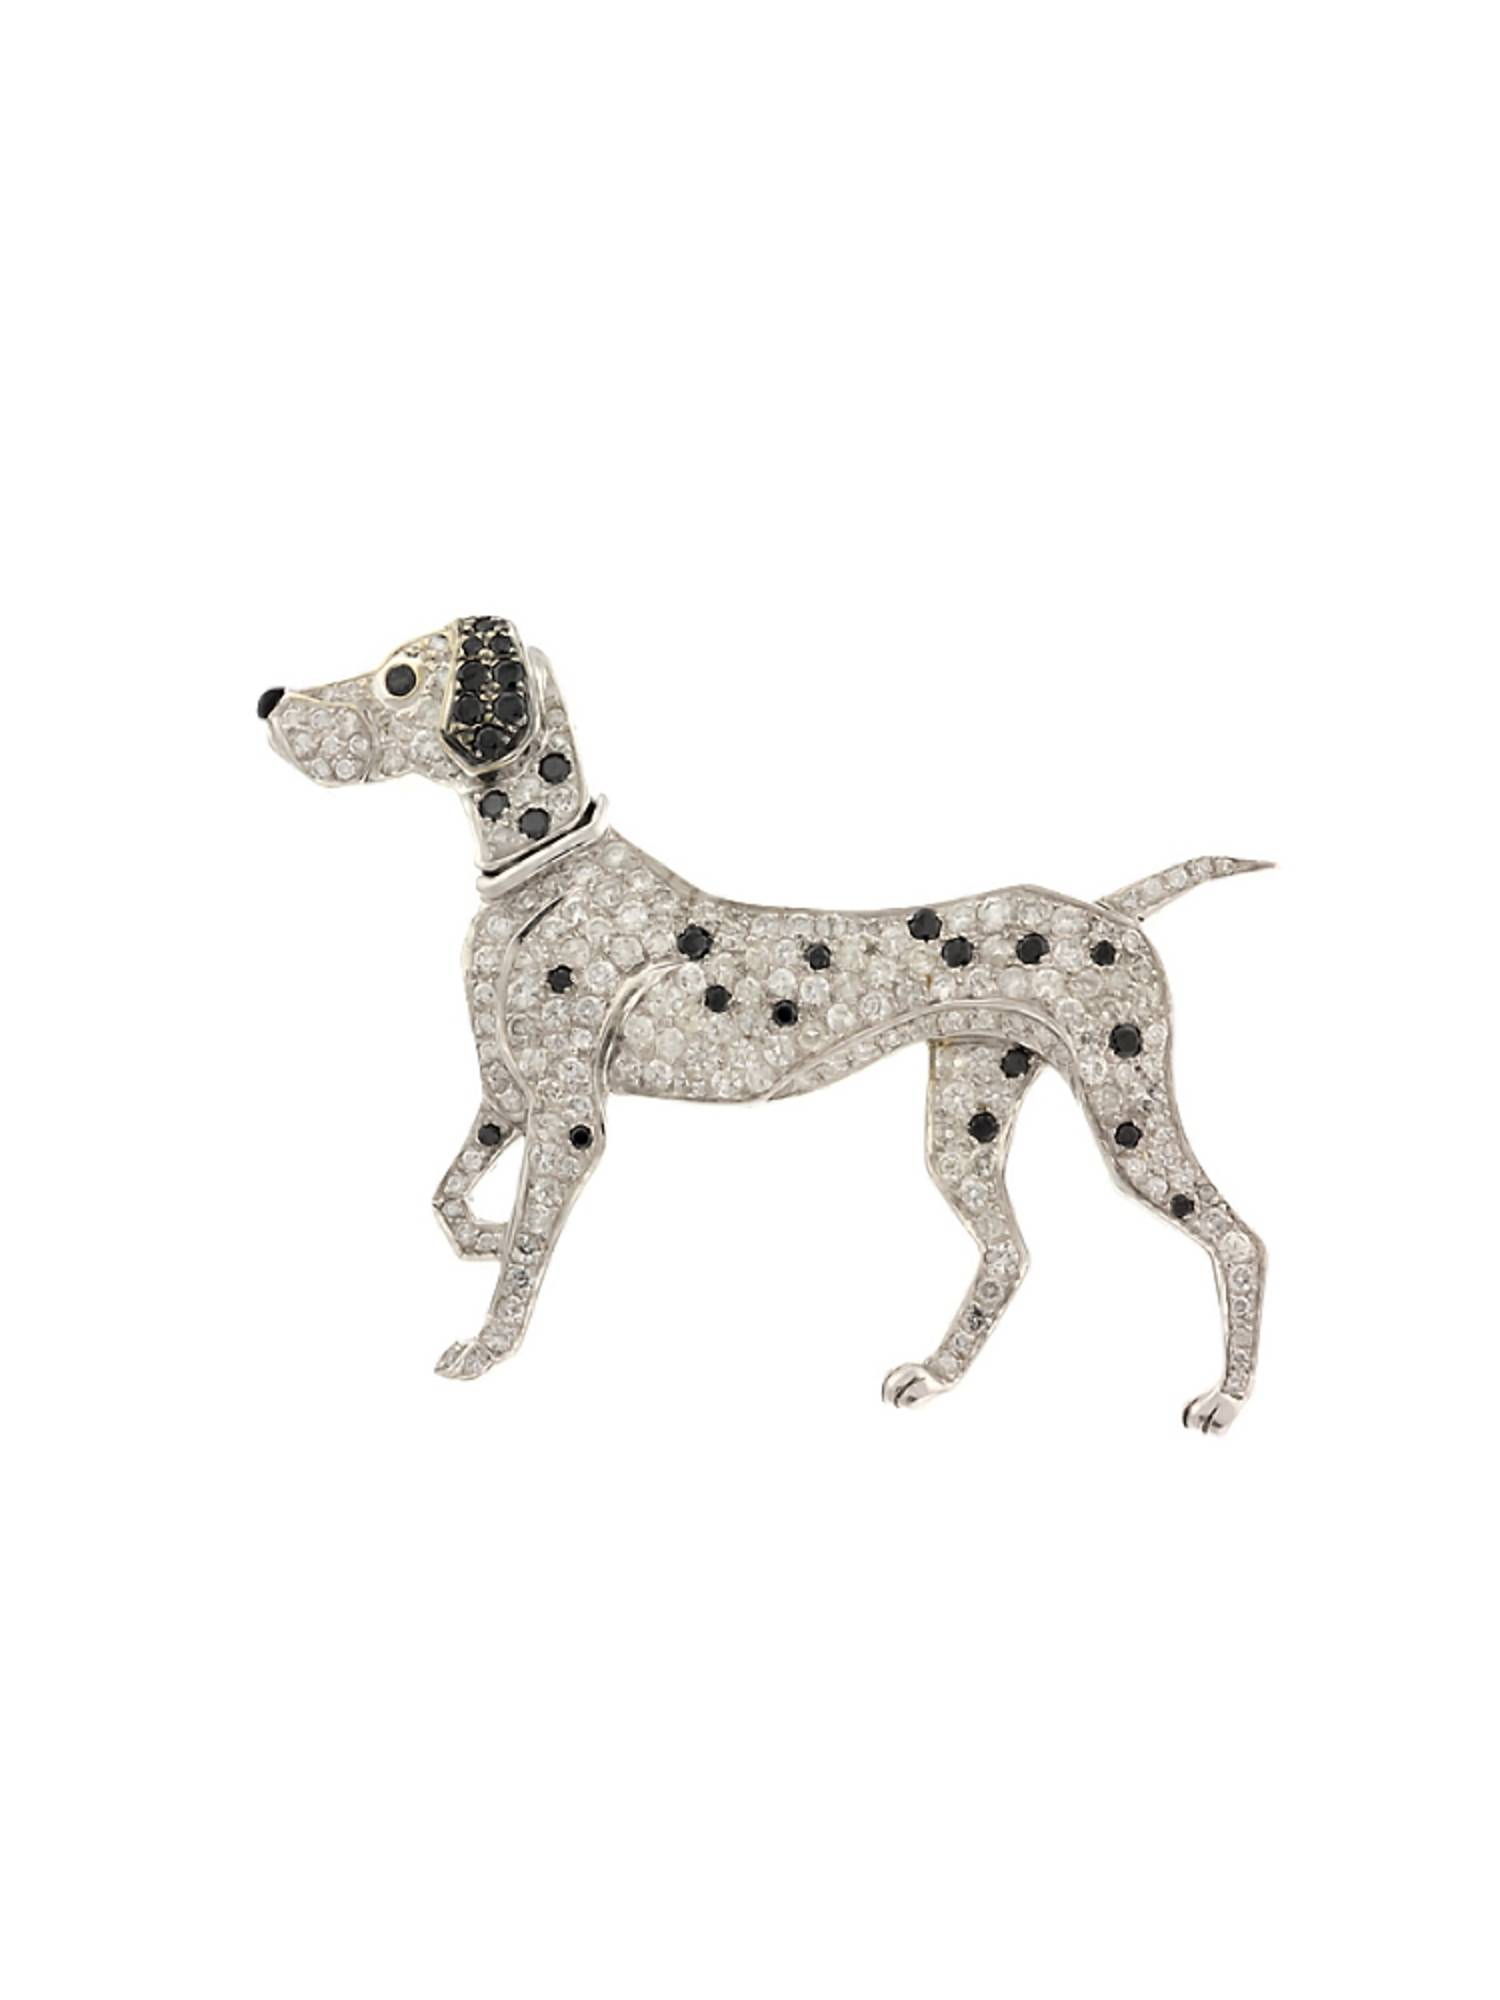 2.52 CT VS WHITE & BLACK DIAMOND DALMATIAN DOG BROOCH